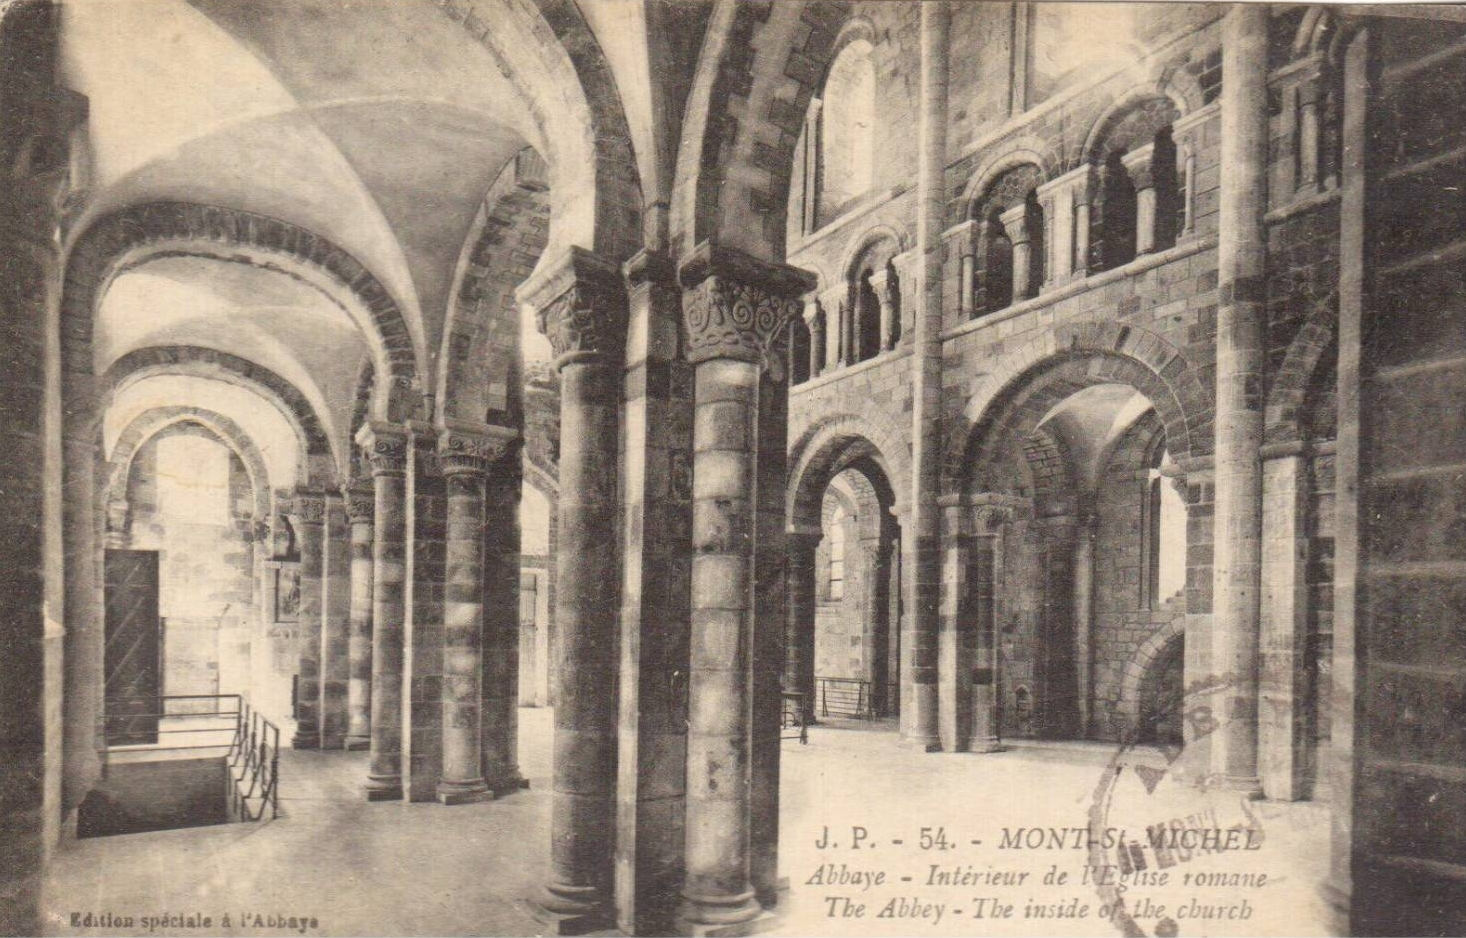 Postcard showing the interior of the abbey at Mont Saint-Michel.